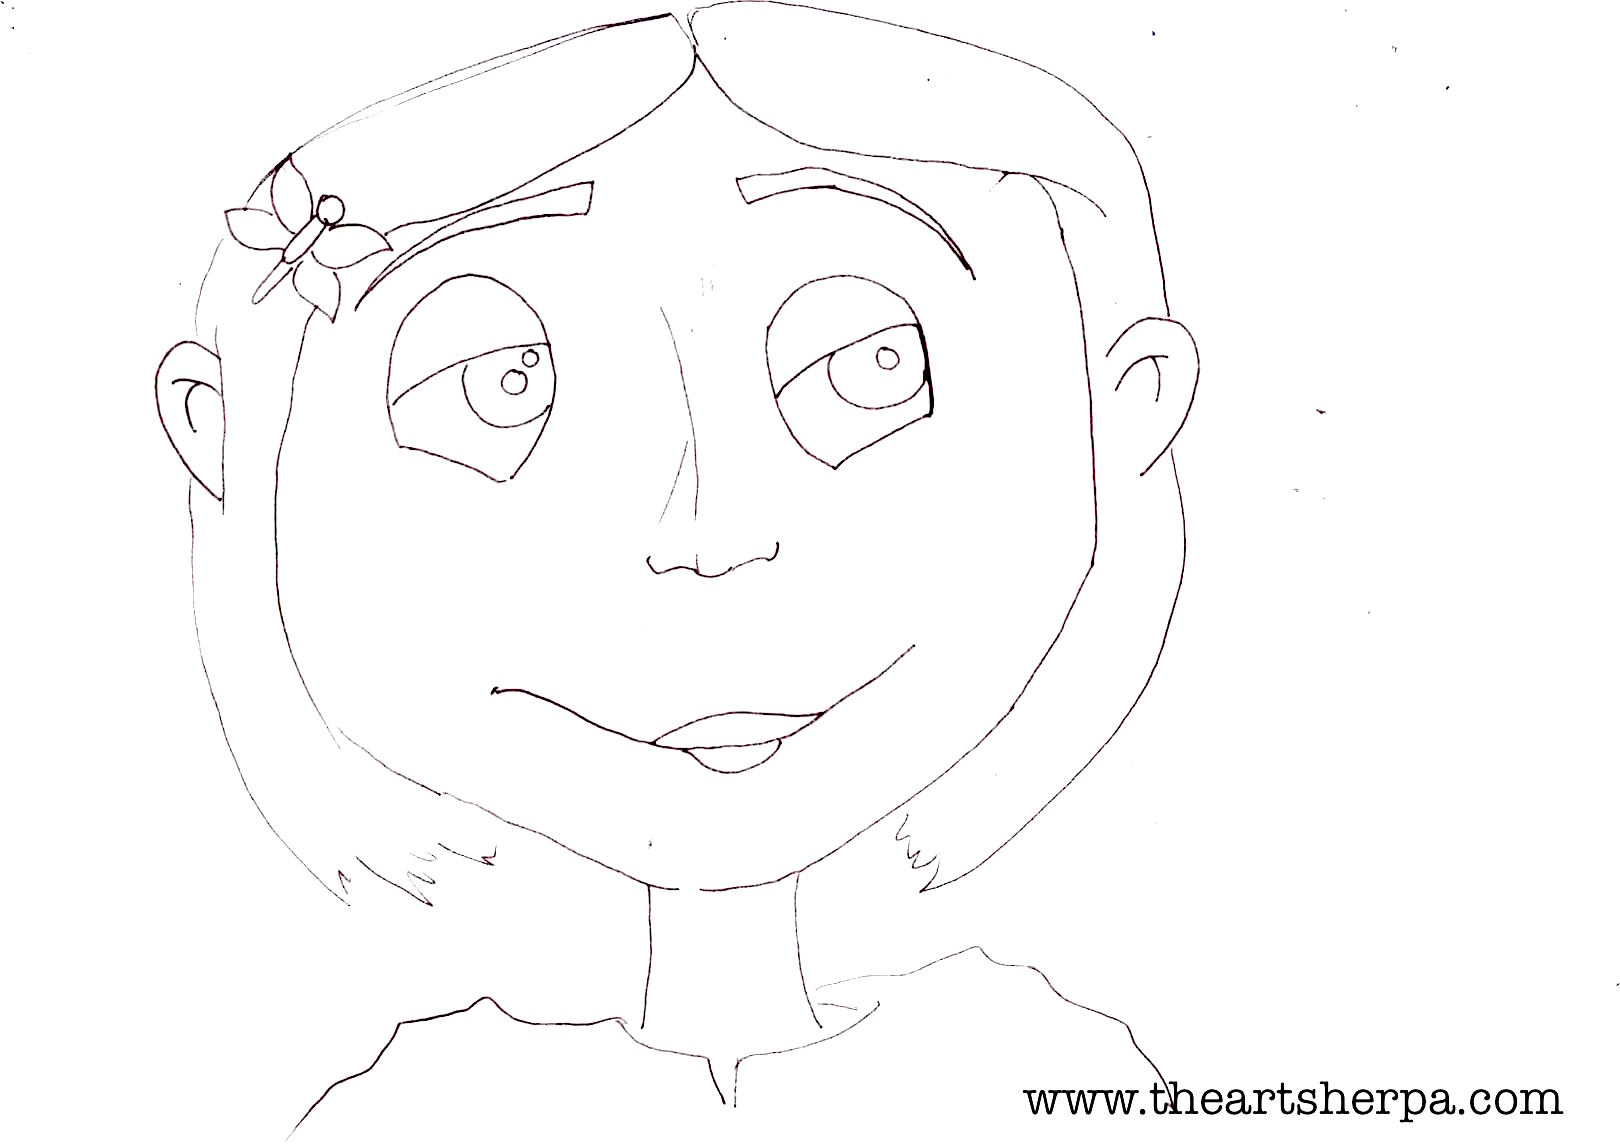 1620x1144 Coraline Traceable For The Youtube Lesson The Art Sherpa The Art